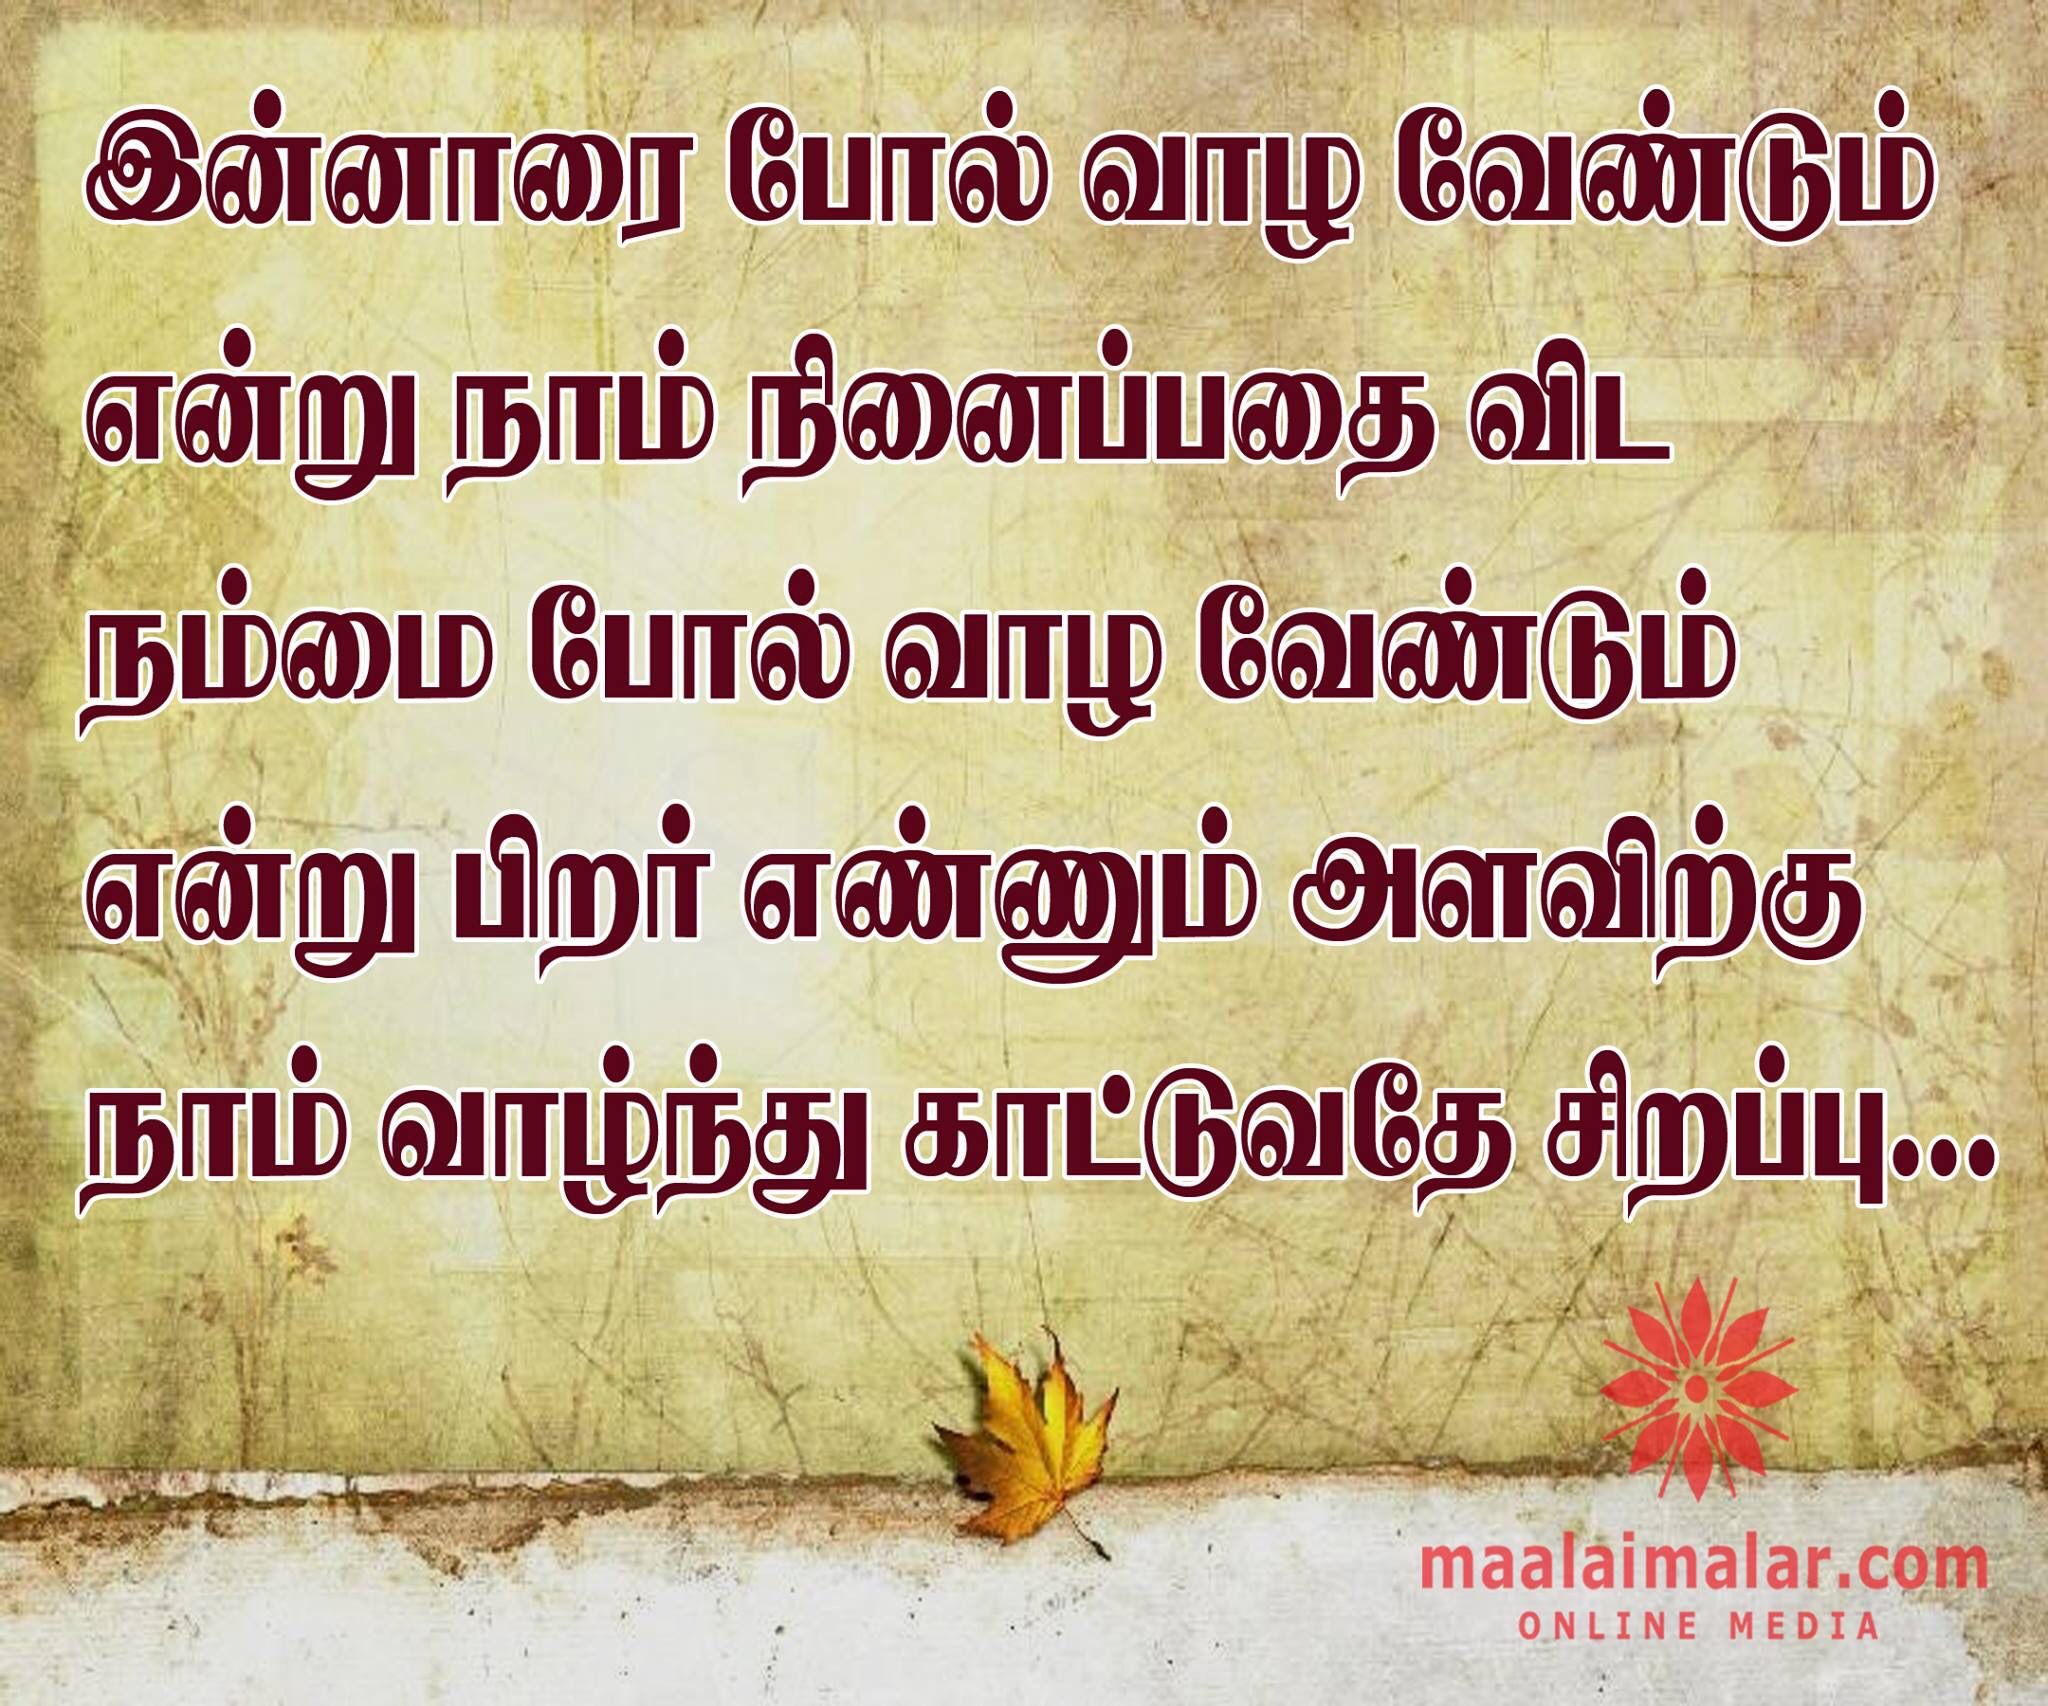 Pin By Ramanaathan Subramanian On Tamil Quotes Pinterest Quotes